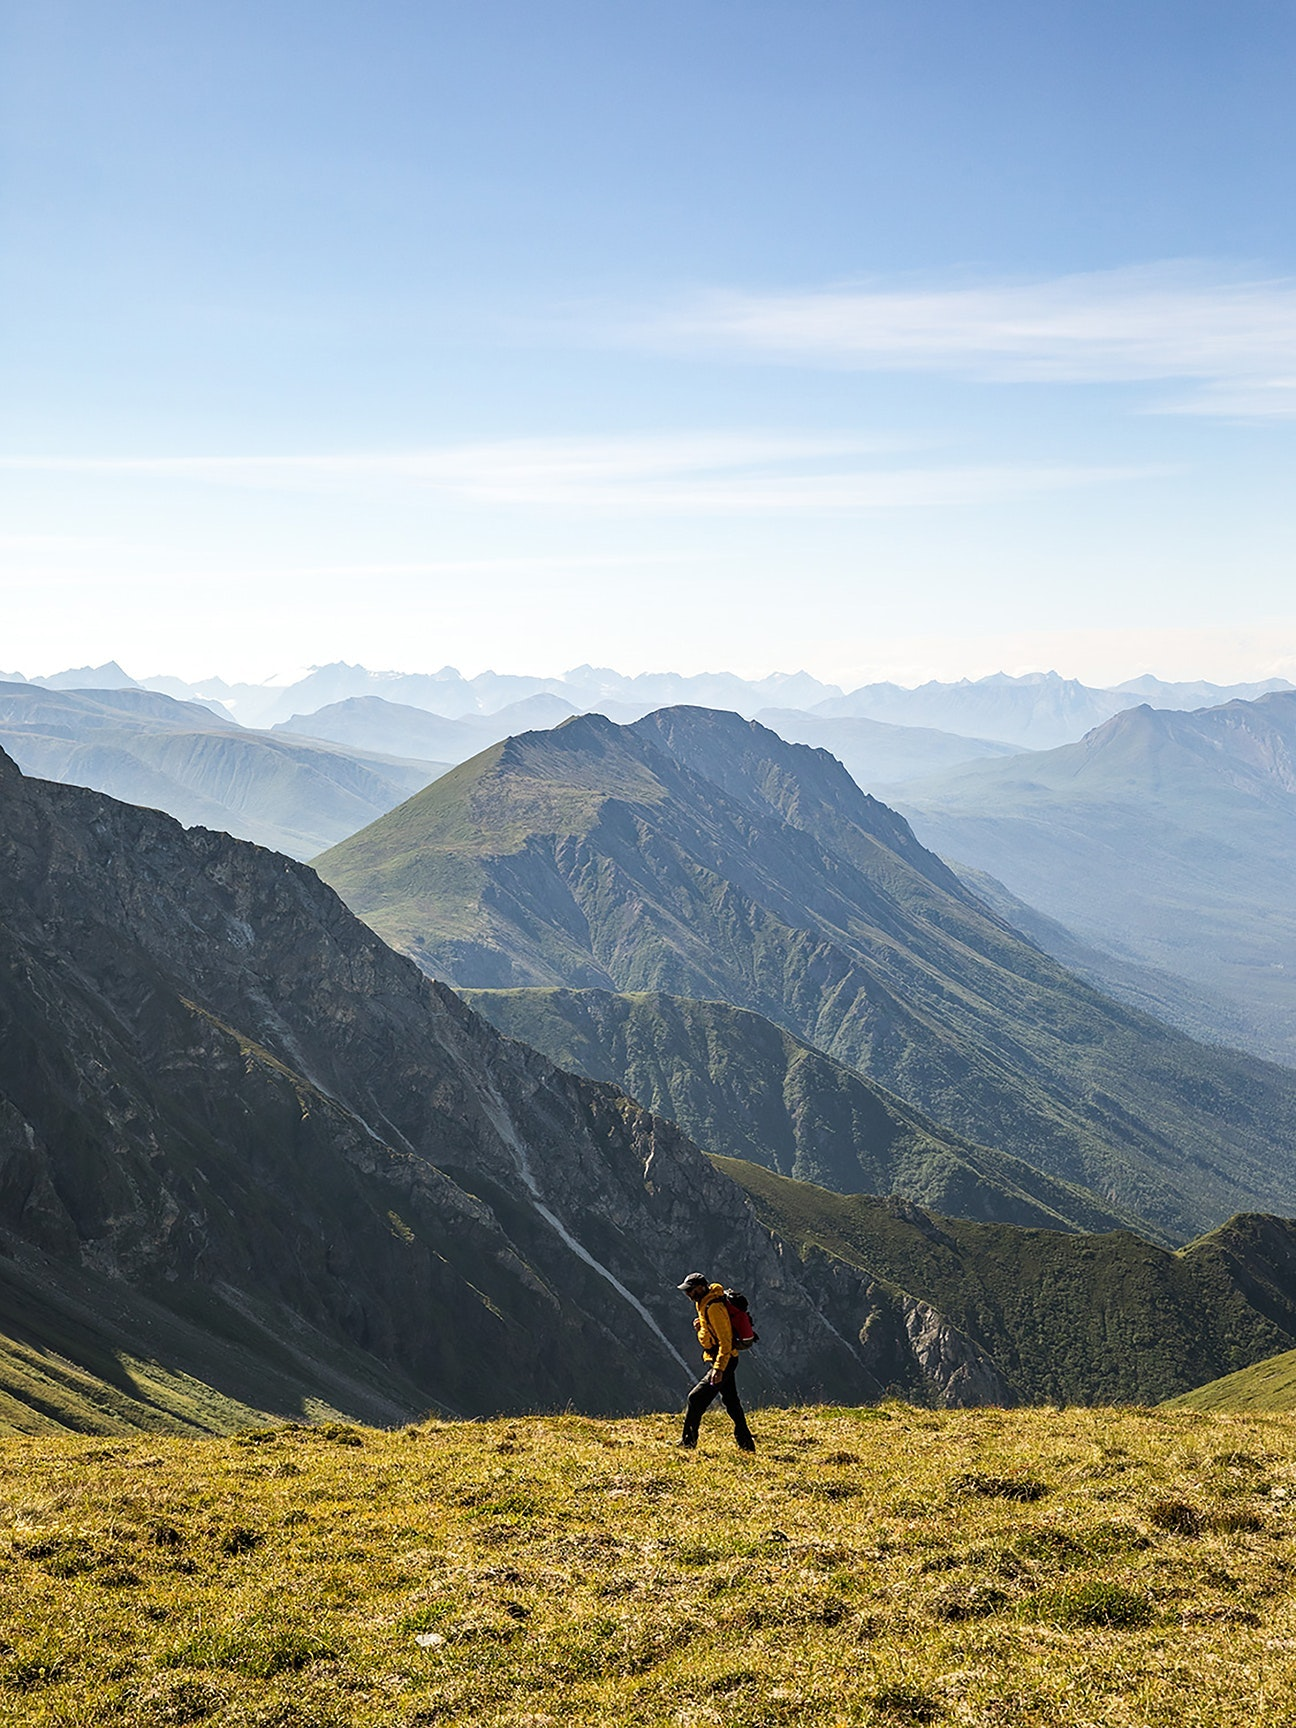 Opportunities for backpacking and day hiking abound in Alaska.